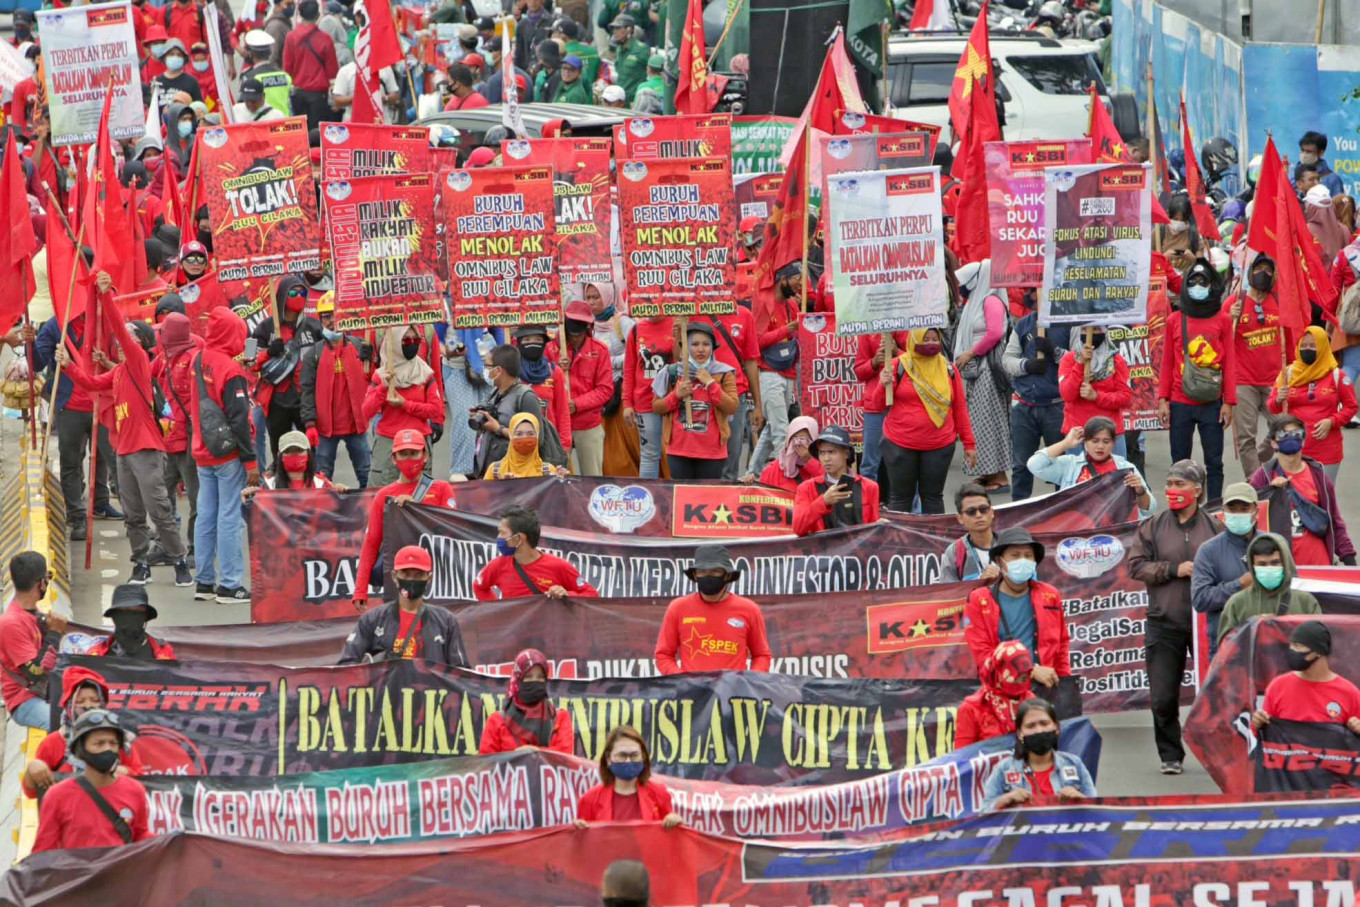 Labor union plans more protests against omnibus law, to prepare legal challenge